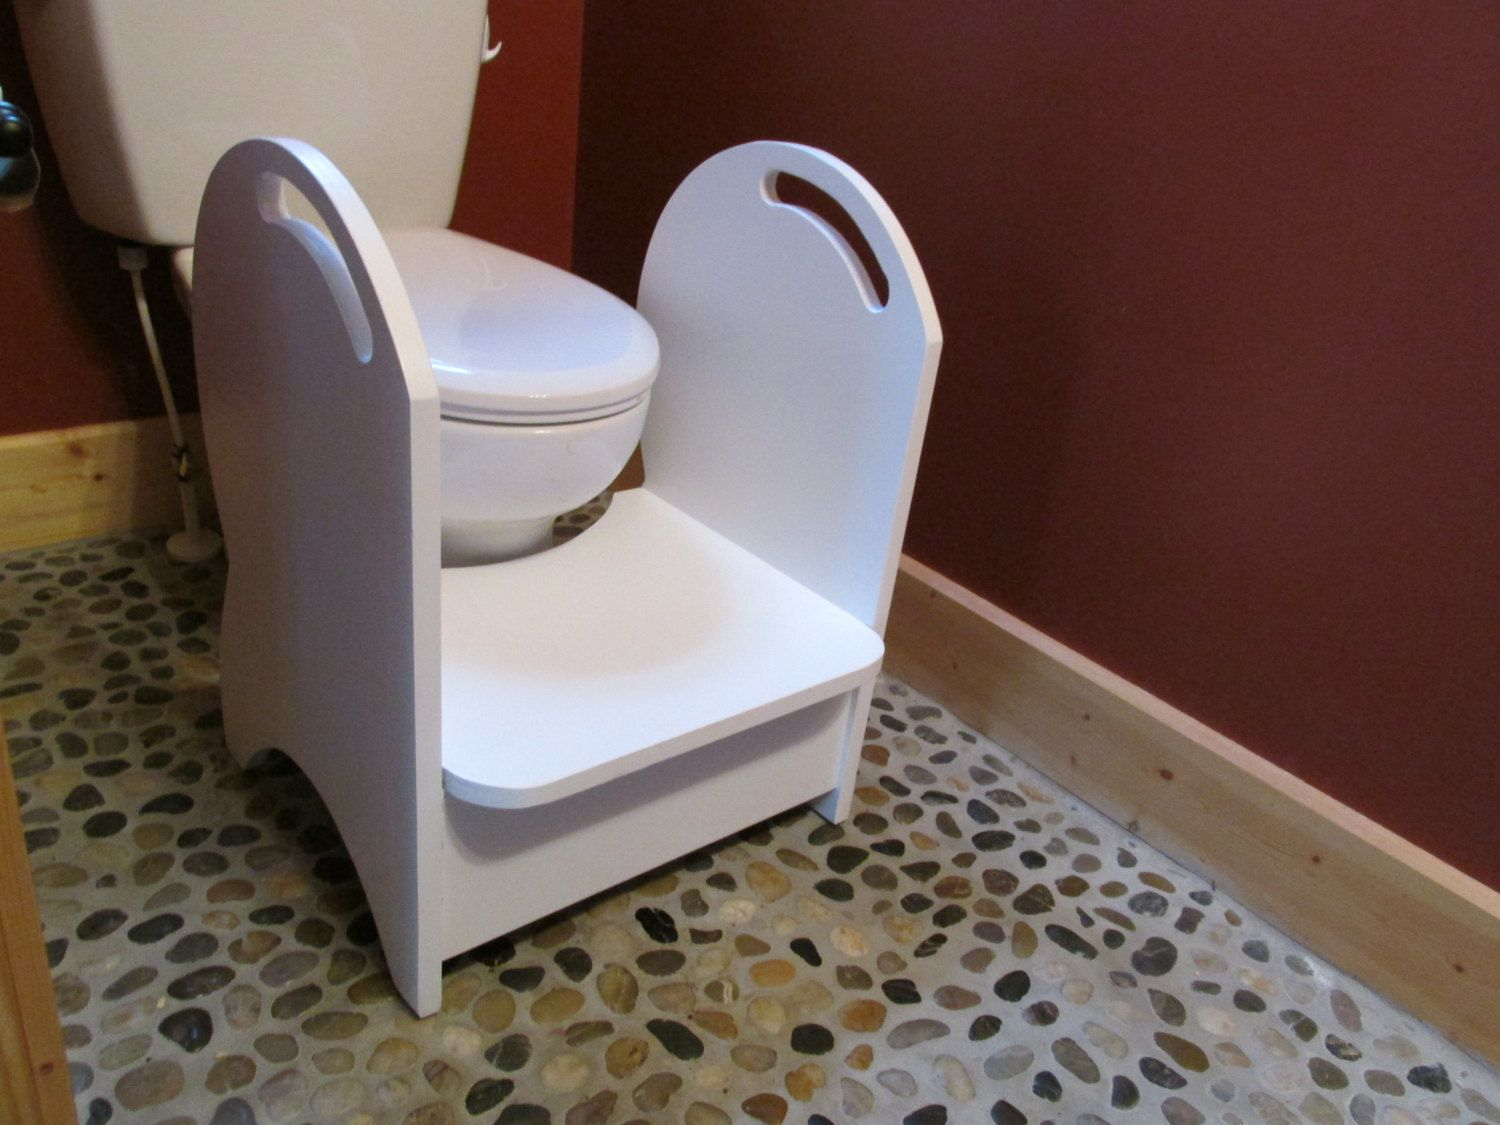 Deluxe Wood Potty Step Stool (white) by Clemswshop on Etsy & Deluxe Wood Potty Step Stool (white) by Clemswshop on Etsy ... islam-shia.org